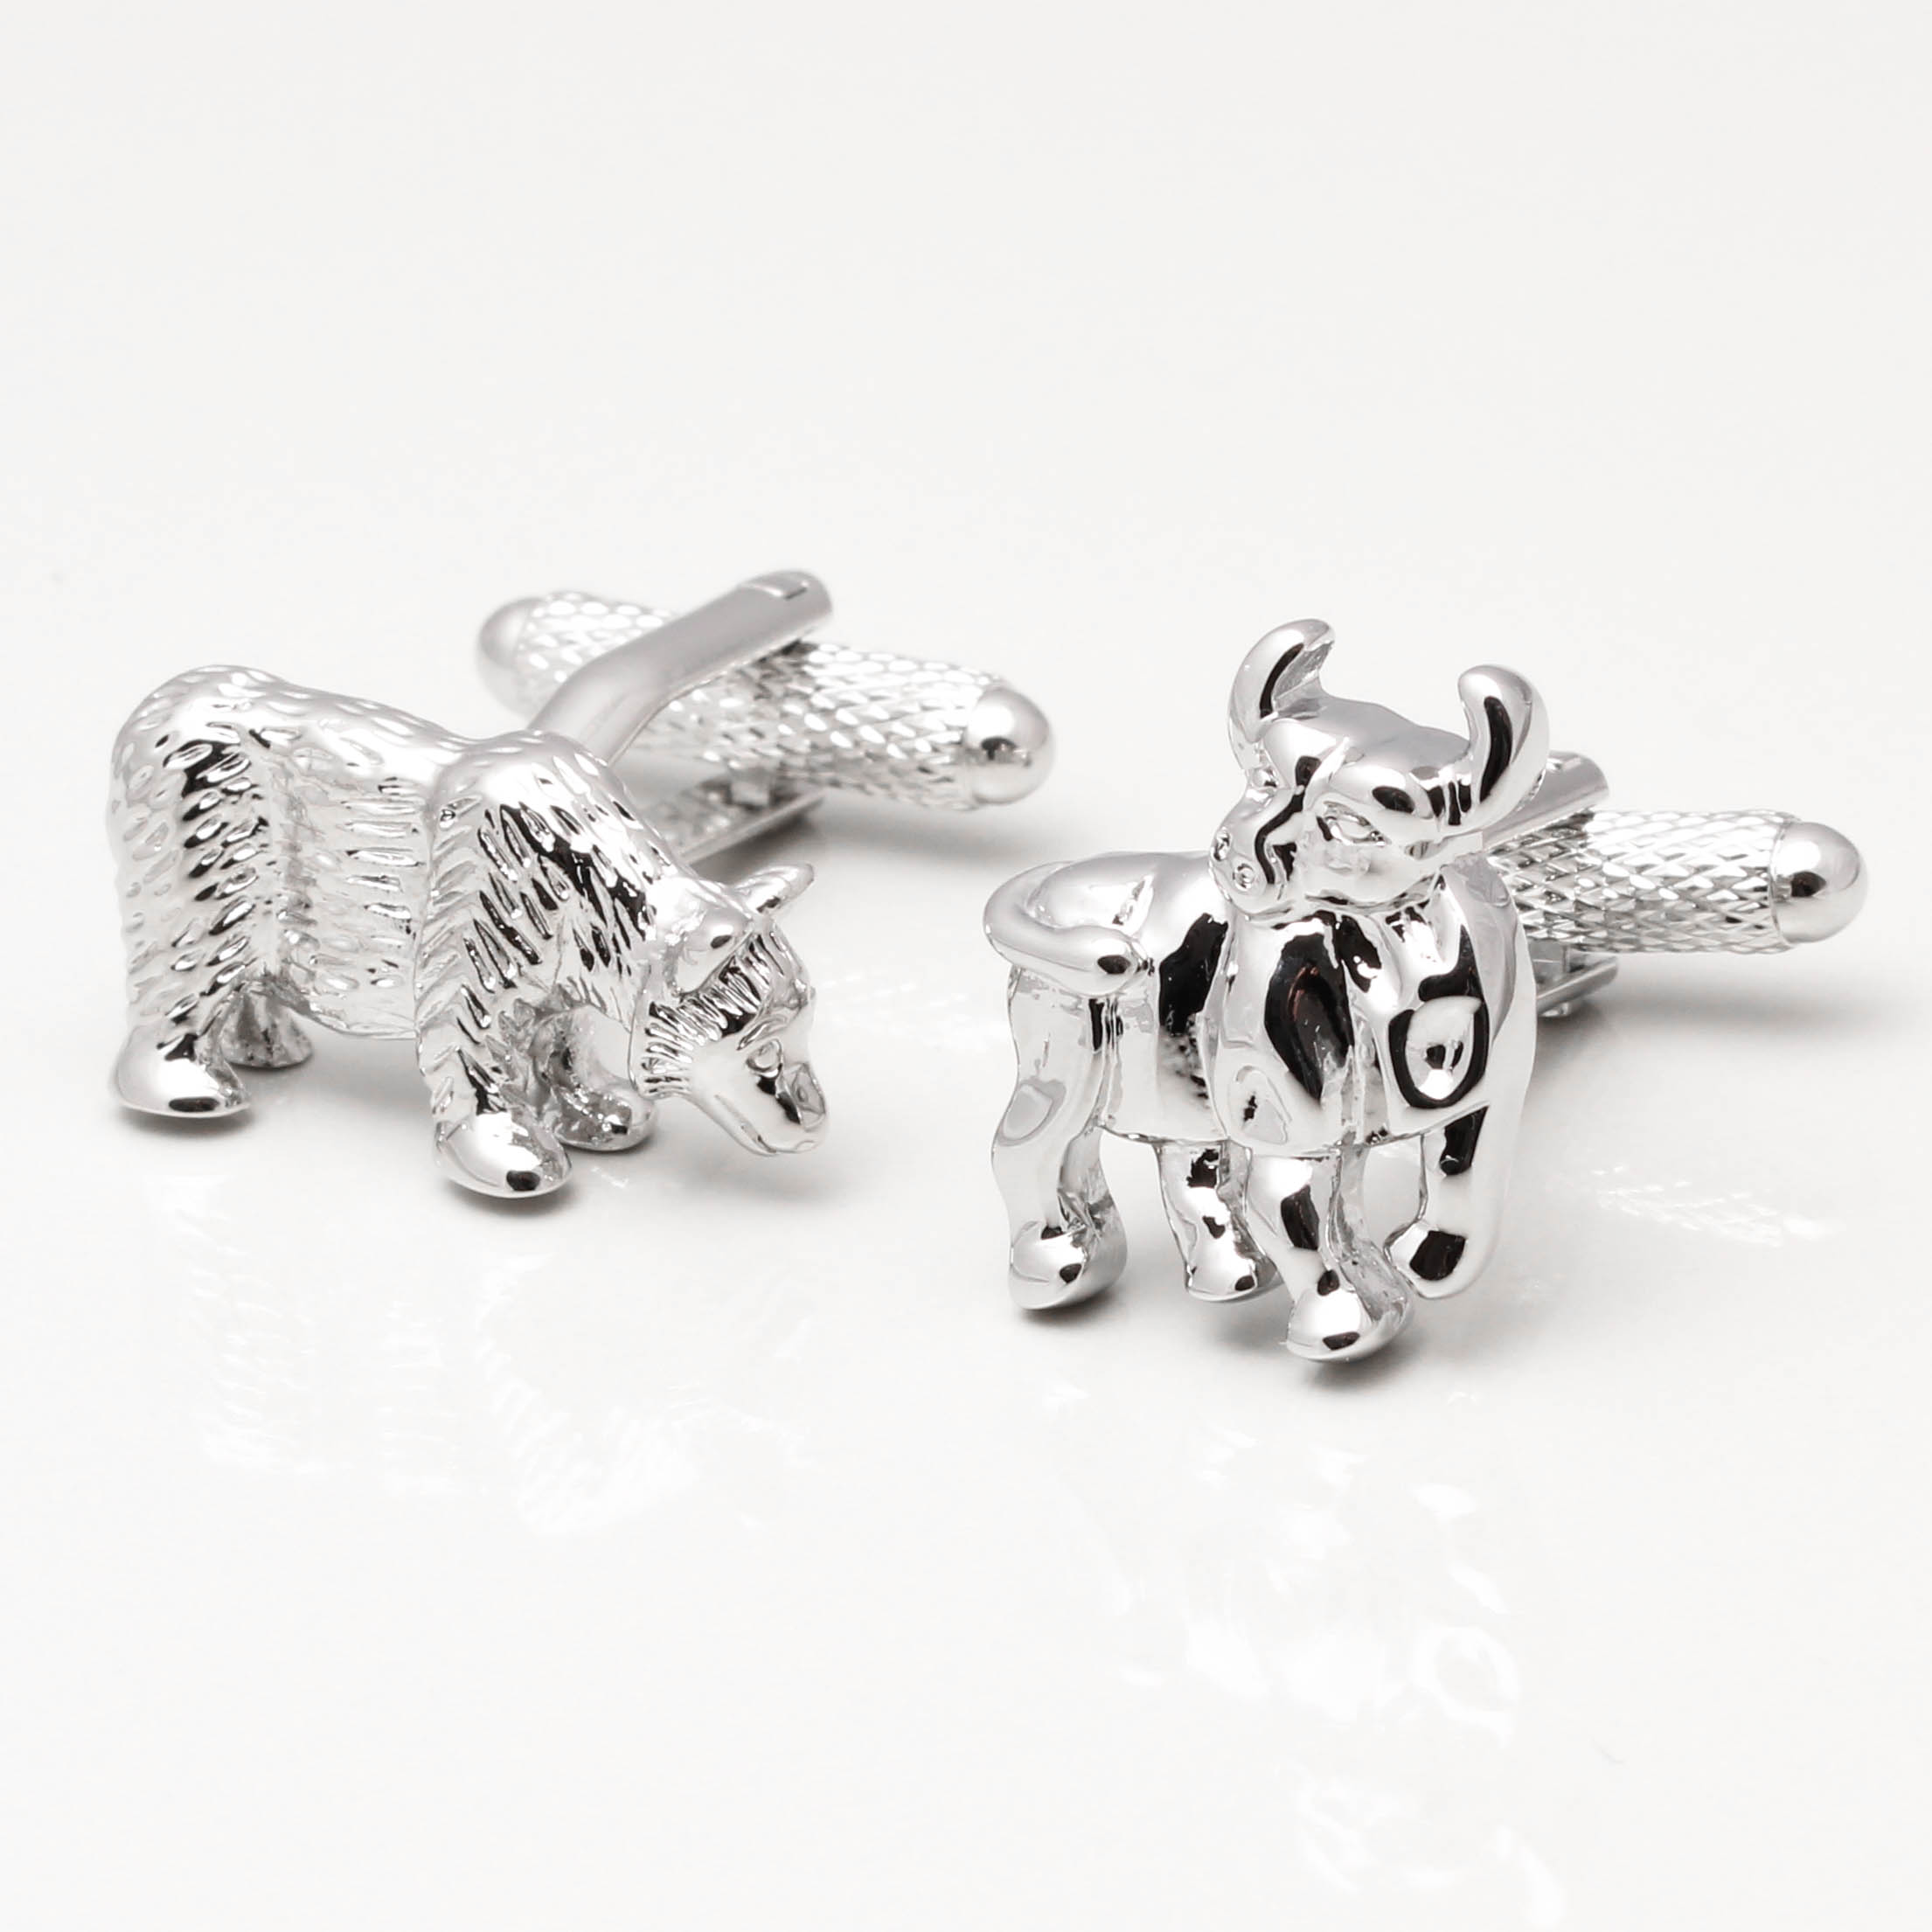 Bull And Bear Gifts Stock Market Cufflinks By Badger And Brown The Cufflink